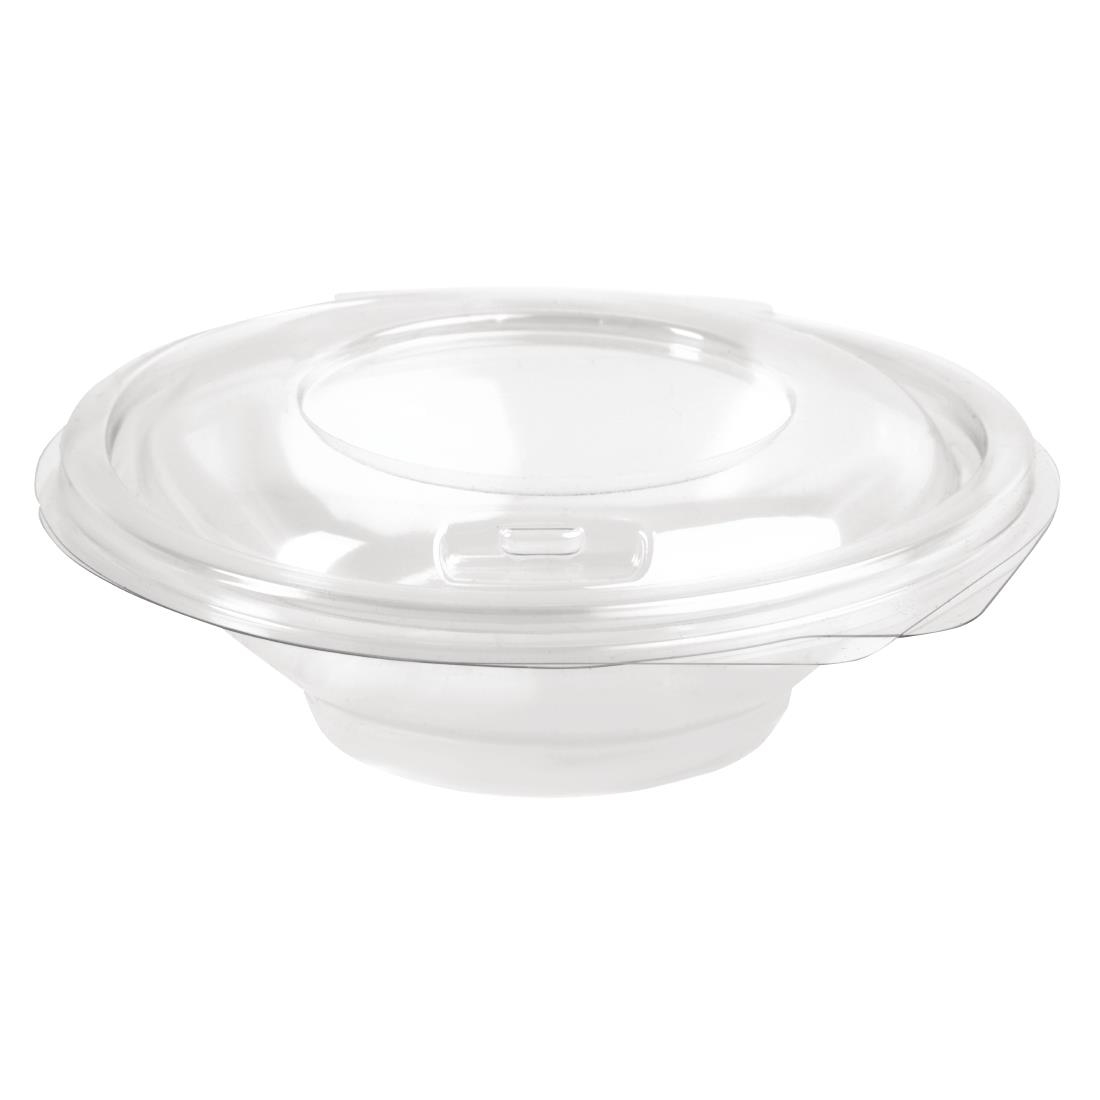 Image of Faerch Contour Recyclable Deli Bowls With Lid 250ml / 9oz (Pack of 550) Pack of 550